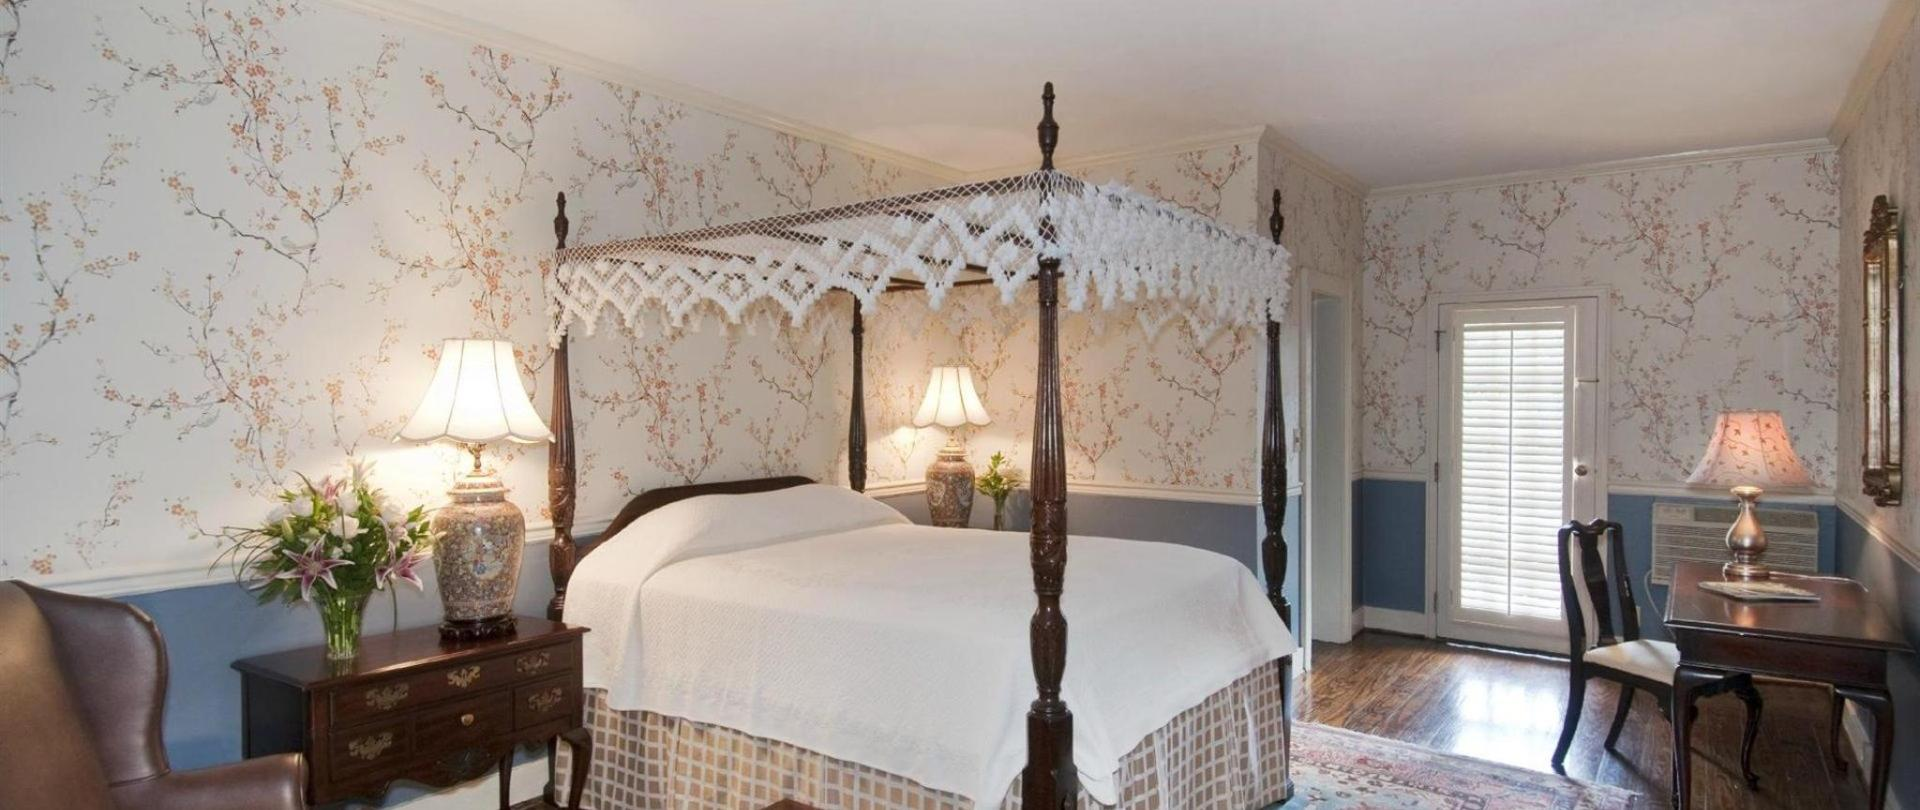 2 meeting street inn charleston pictures Two Meeting Street Inn Room Rates and Availability m